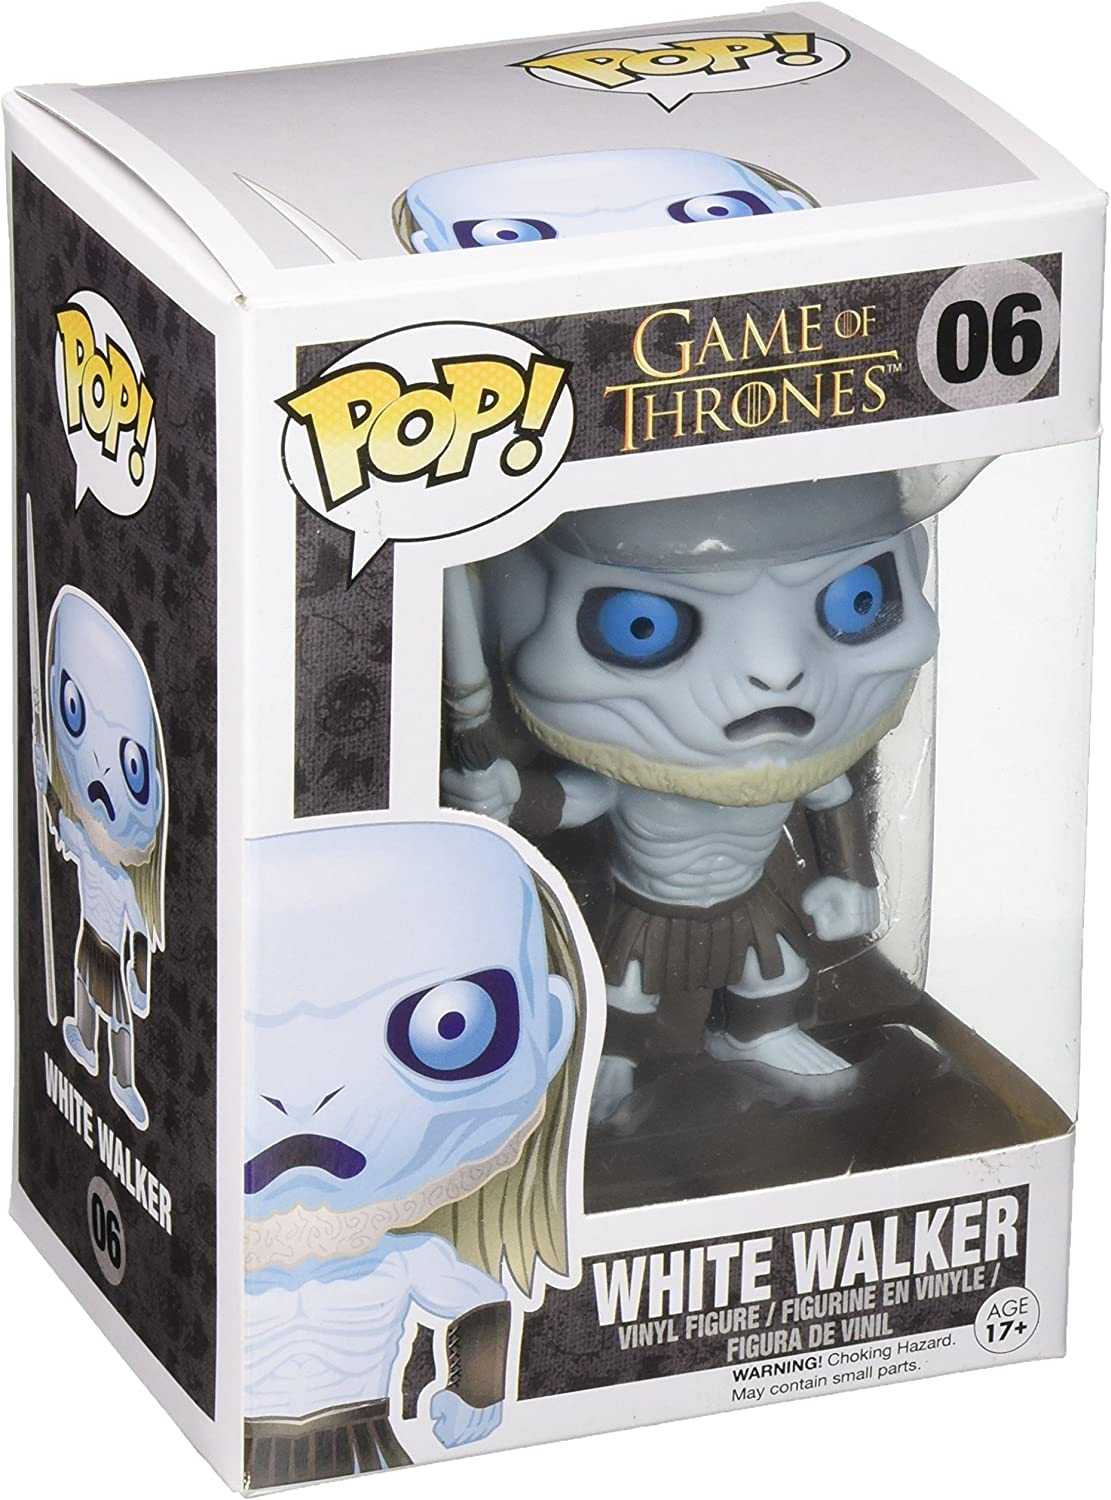 Funko Pop! - Vinyl: Game of Thrones: White Walker (3017): Funko Pop! Television:: Amazon.es: Juguetes y juegos